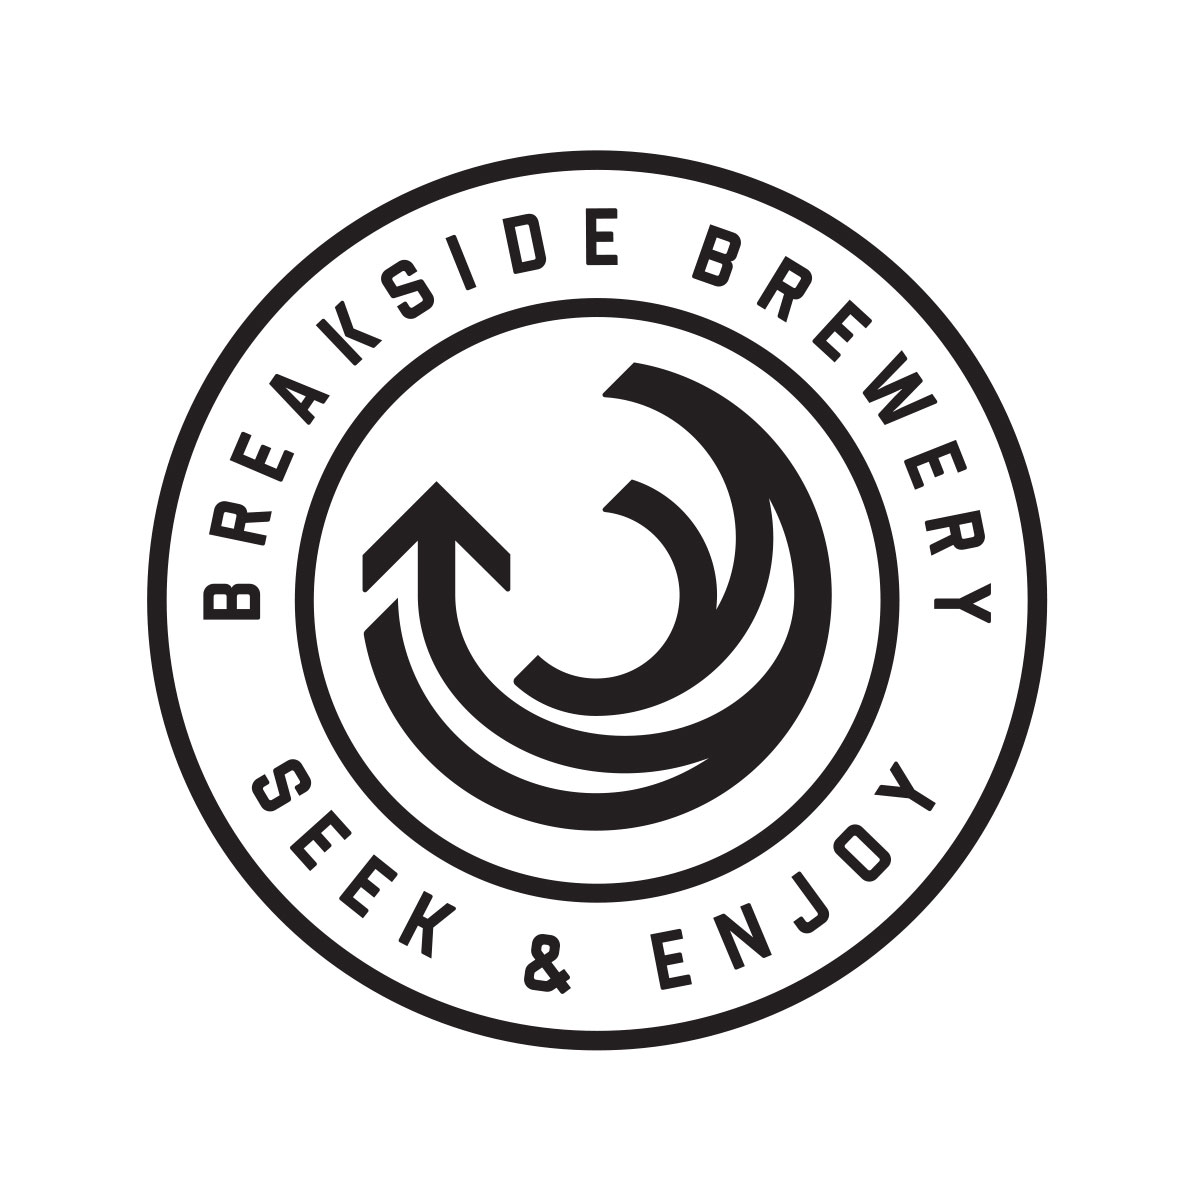 Wednesday, October 11th @ 6pm — A Evening with Breakside Brewery featuring Brewer Jacob Leonard